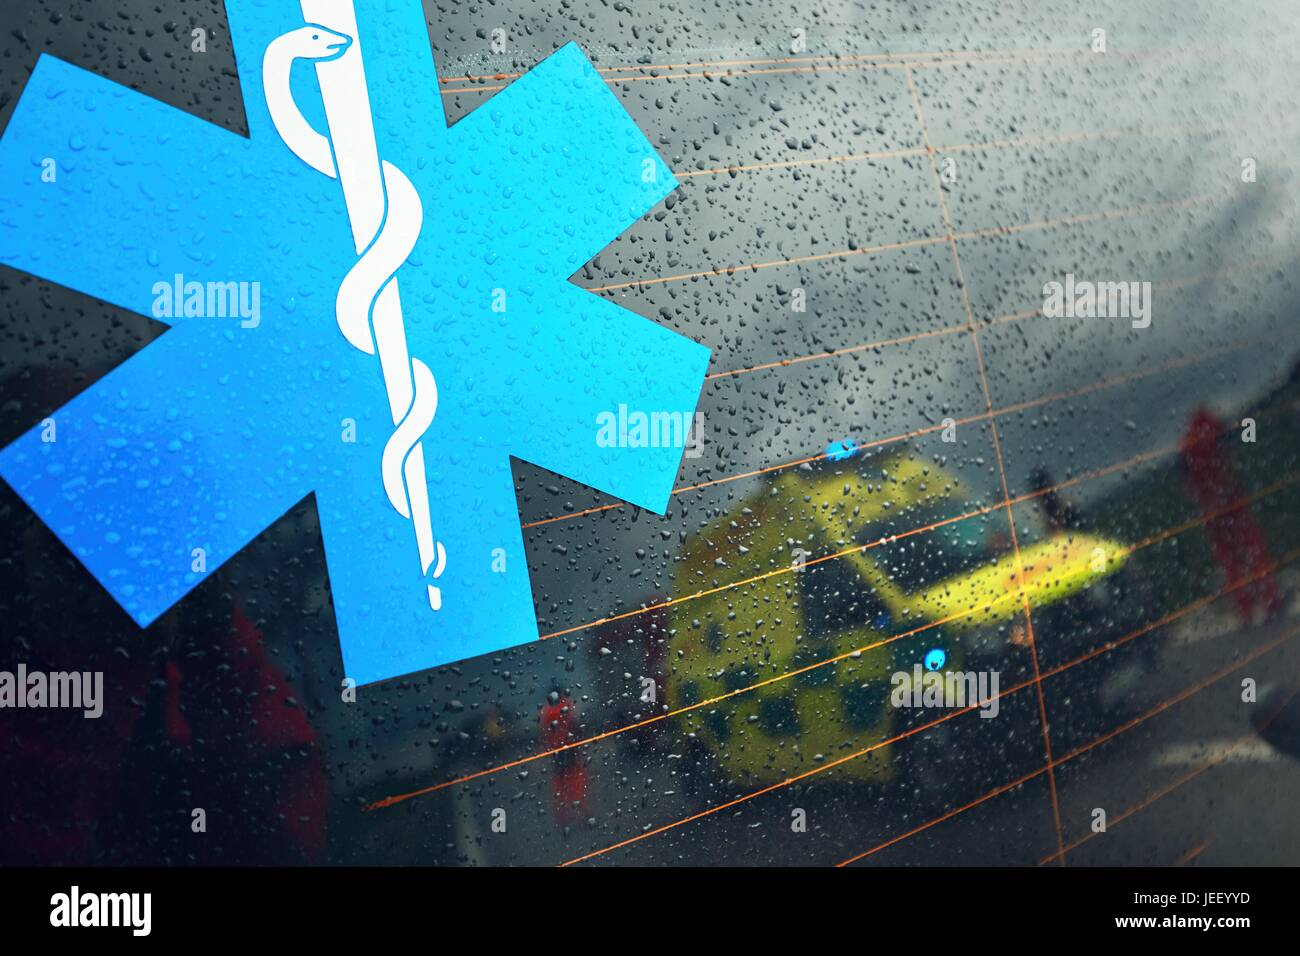 Reflection of the ambulance car. Teams of the Emergency medical service are responding to an traffic accident in - Stock Image